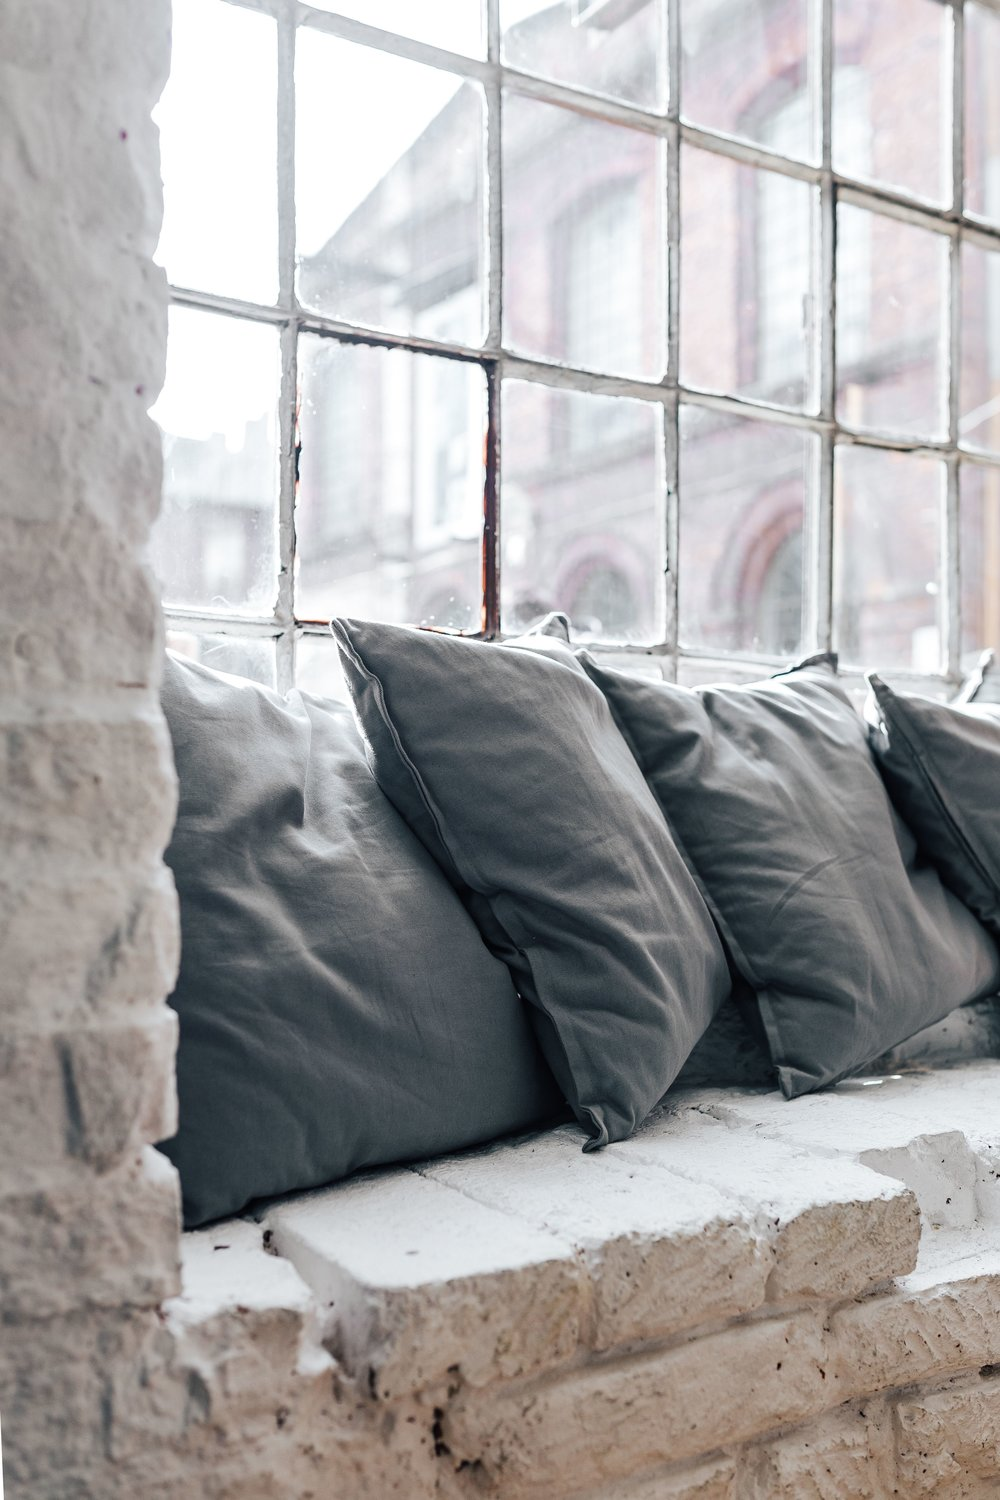 kaboompics_Pillows by the window.jpg